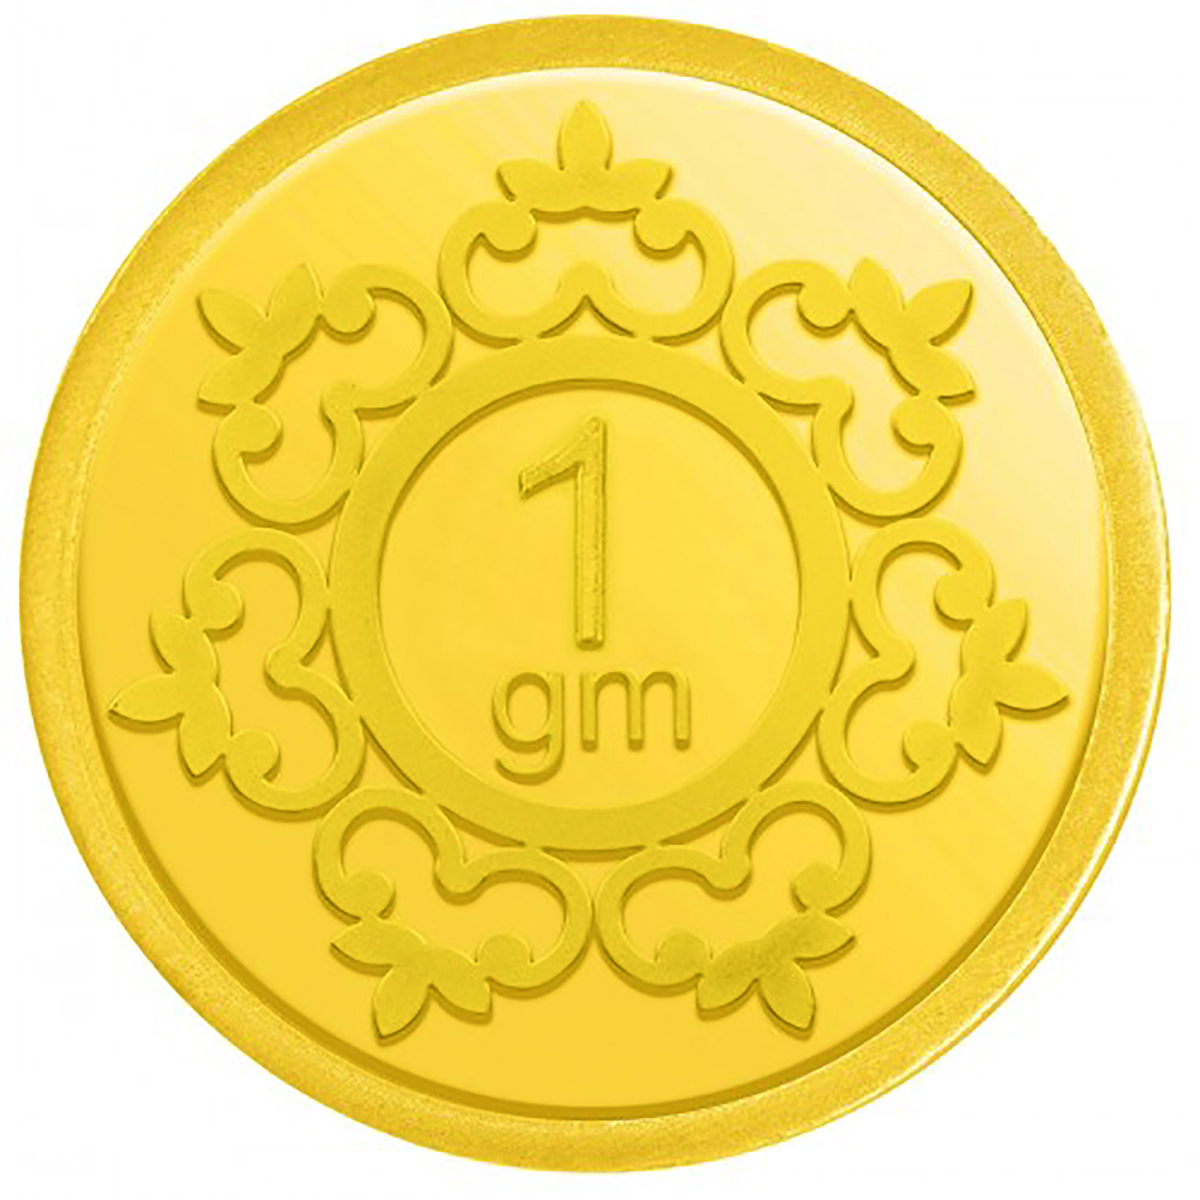 Guarantee Ornament House 1g pure Gold Coin hallmarked 24kt Gold with Govt certified hallmark